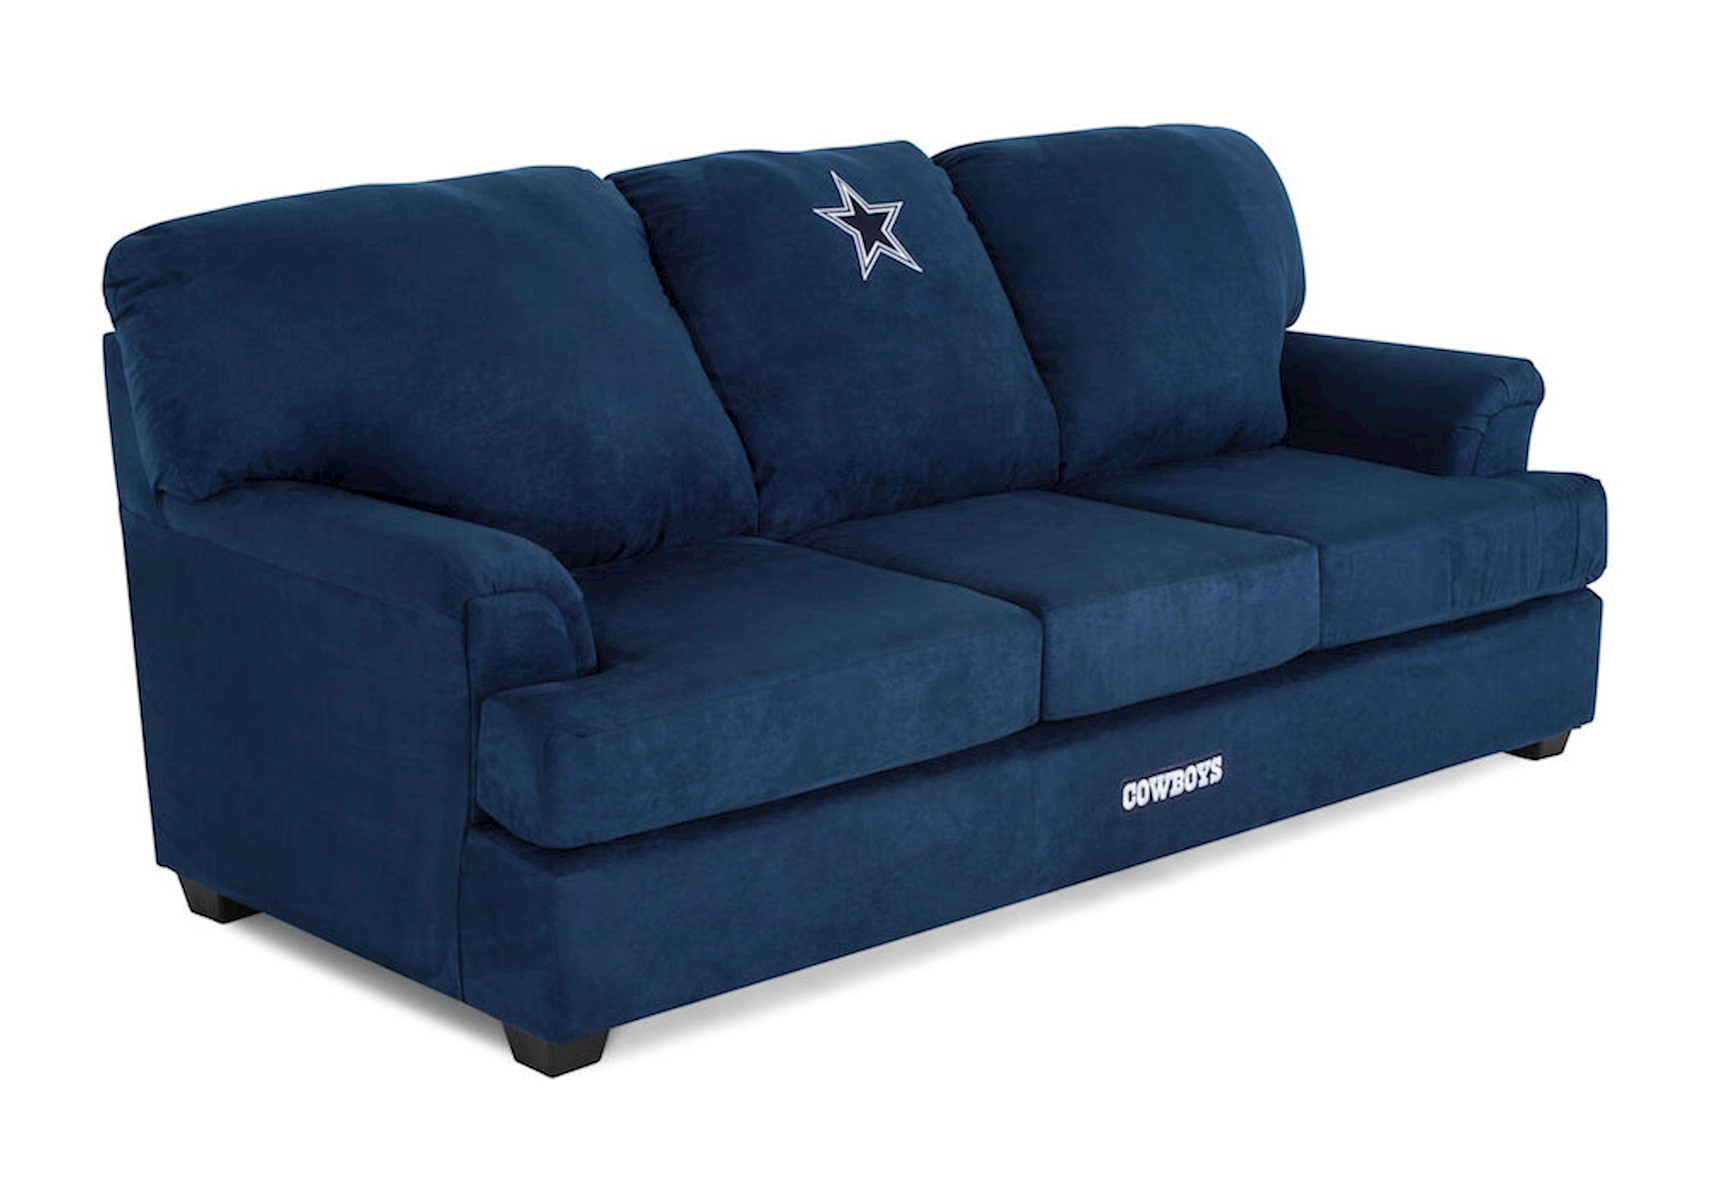 Dallas Cowboys Sofa Dallas Cowboys Recliner Zammer Co